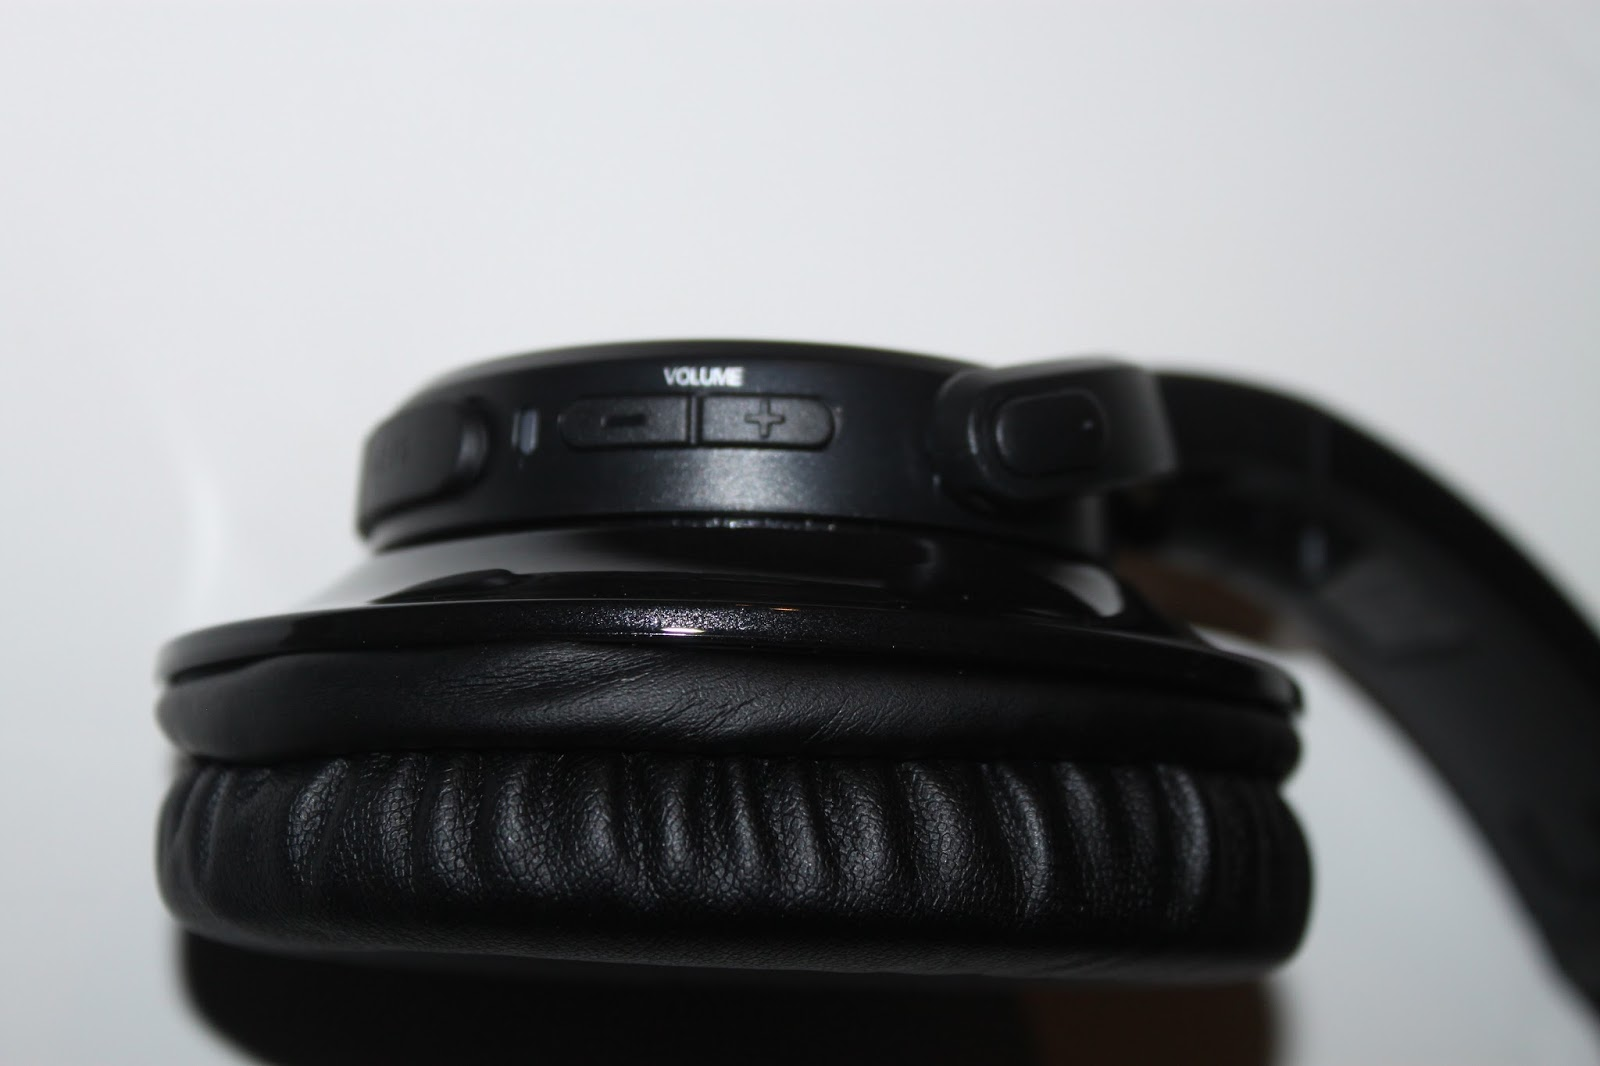 Audio-Technica ath-s 700bt Review